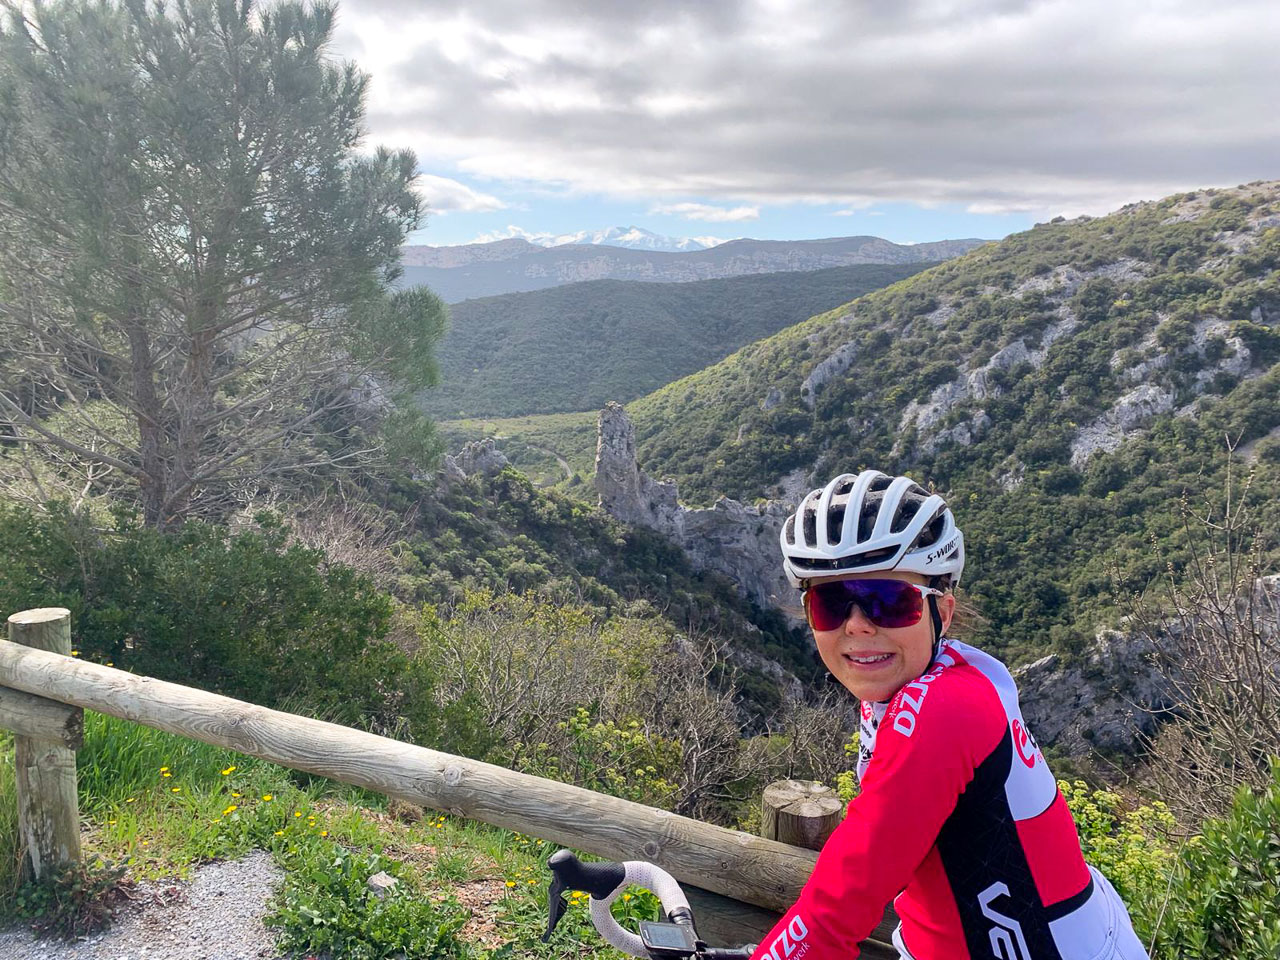 Anna Kay enjoys her offseason as she readies for the 2020/2021 cyclocross season despite the COVID-19 pandemic. photo: courtesy